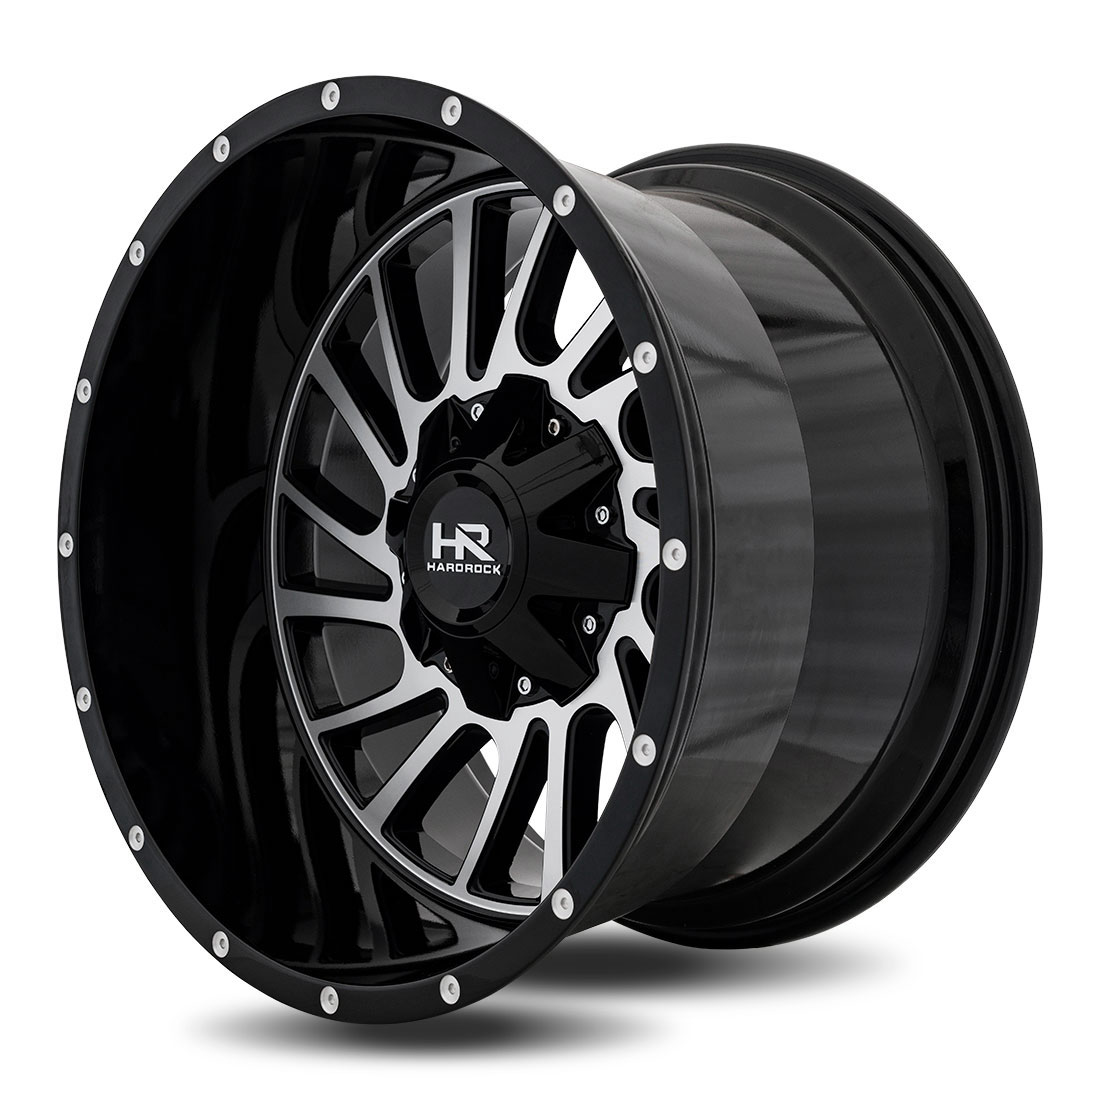 Hardrock Offroad Wheels H708 Overdrive - Black Machine Face - 20x12